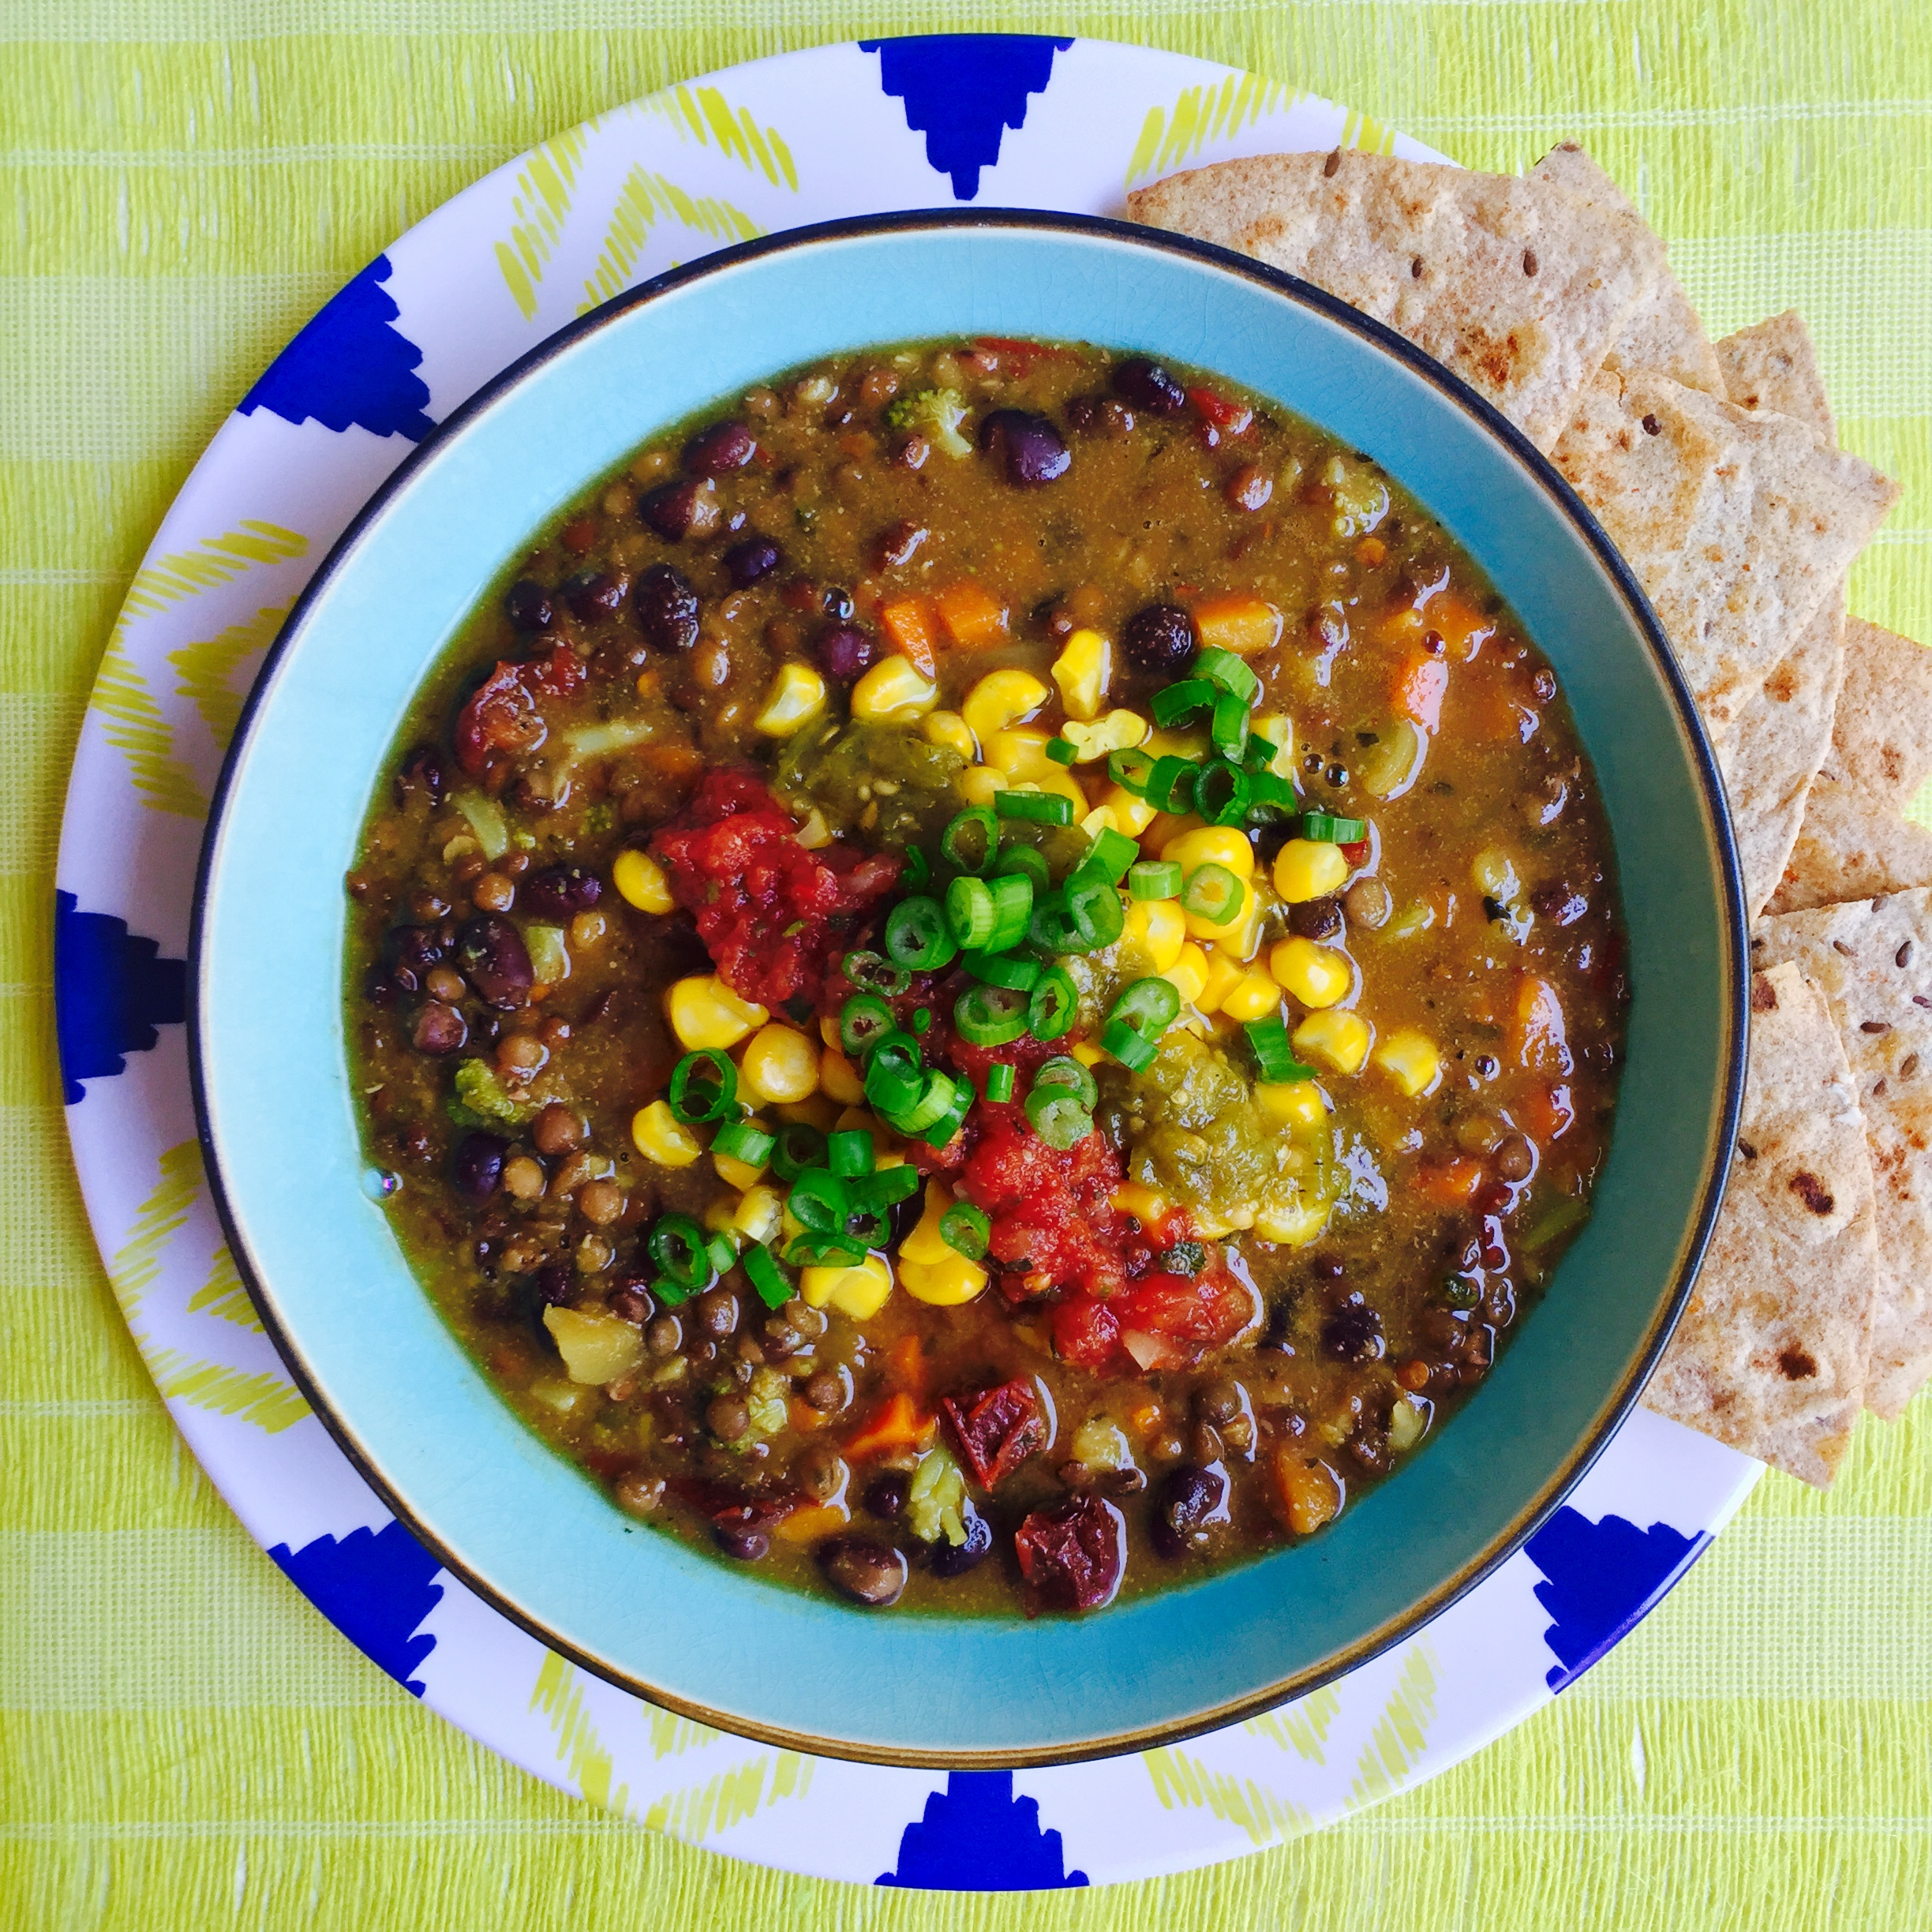 Chipotle Lentil and Black Bean Soup recipe Eat to Live Program Dr Fuhrman by MyMommaToldMe.com